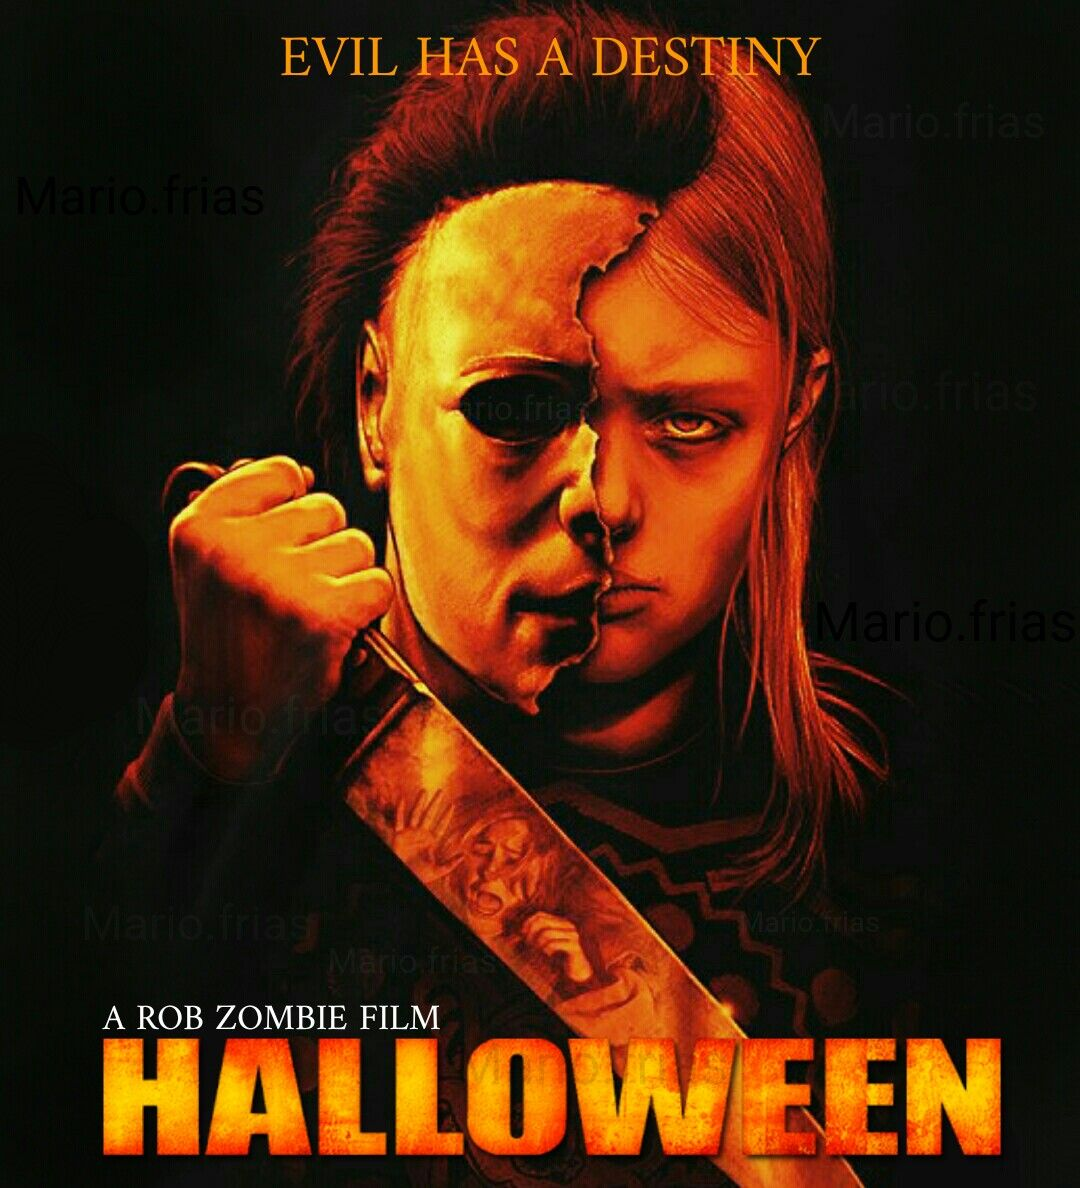 halloween rob zombie horror movie slasher - Halloween Movie By Rob Zombie